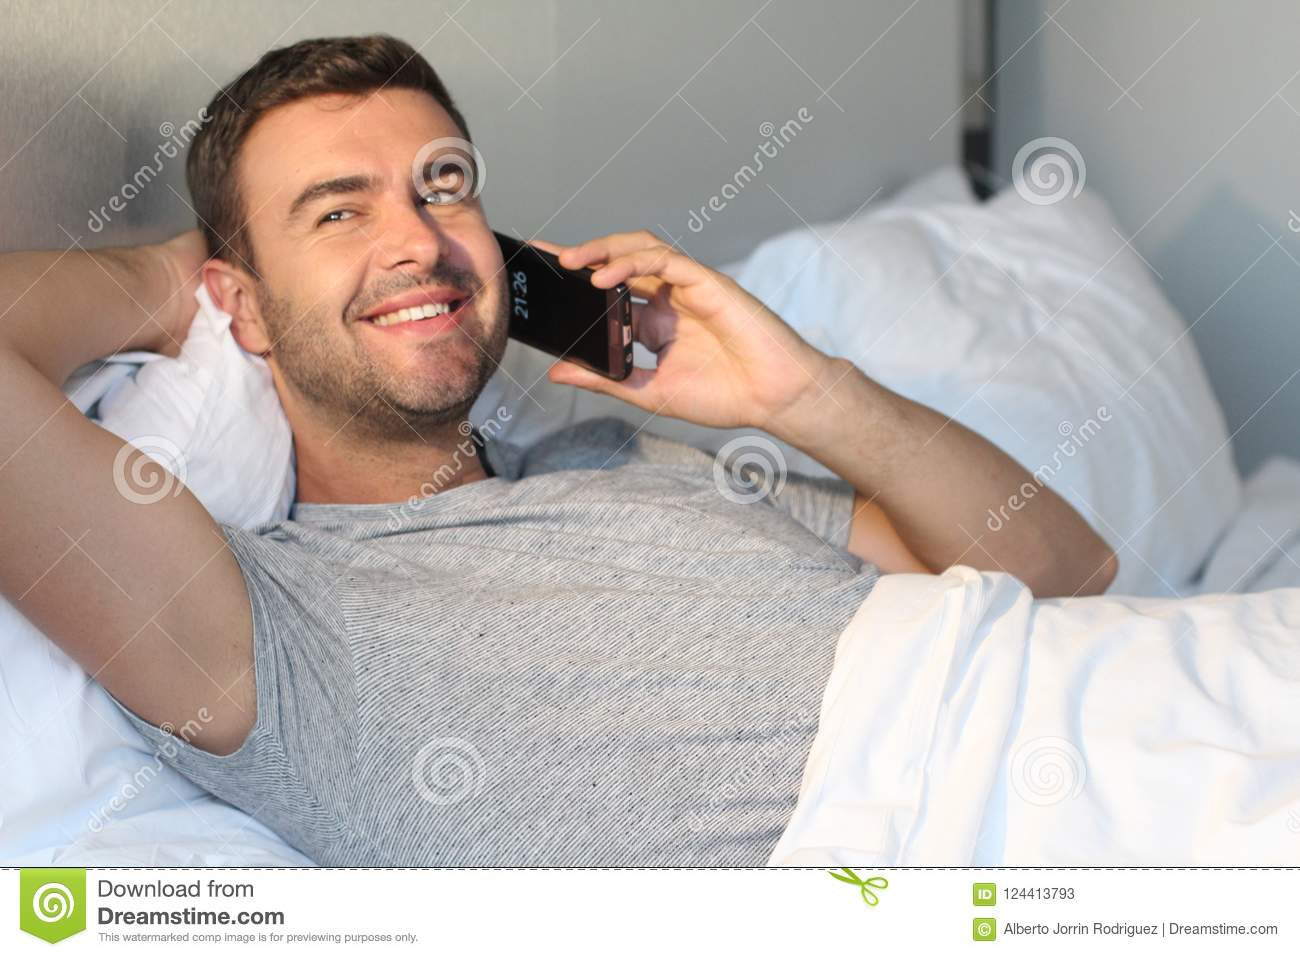 Cute Guy Comfortably Calling In Bed Stock Image - Image of